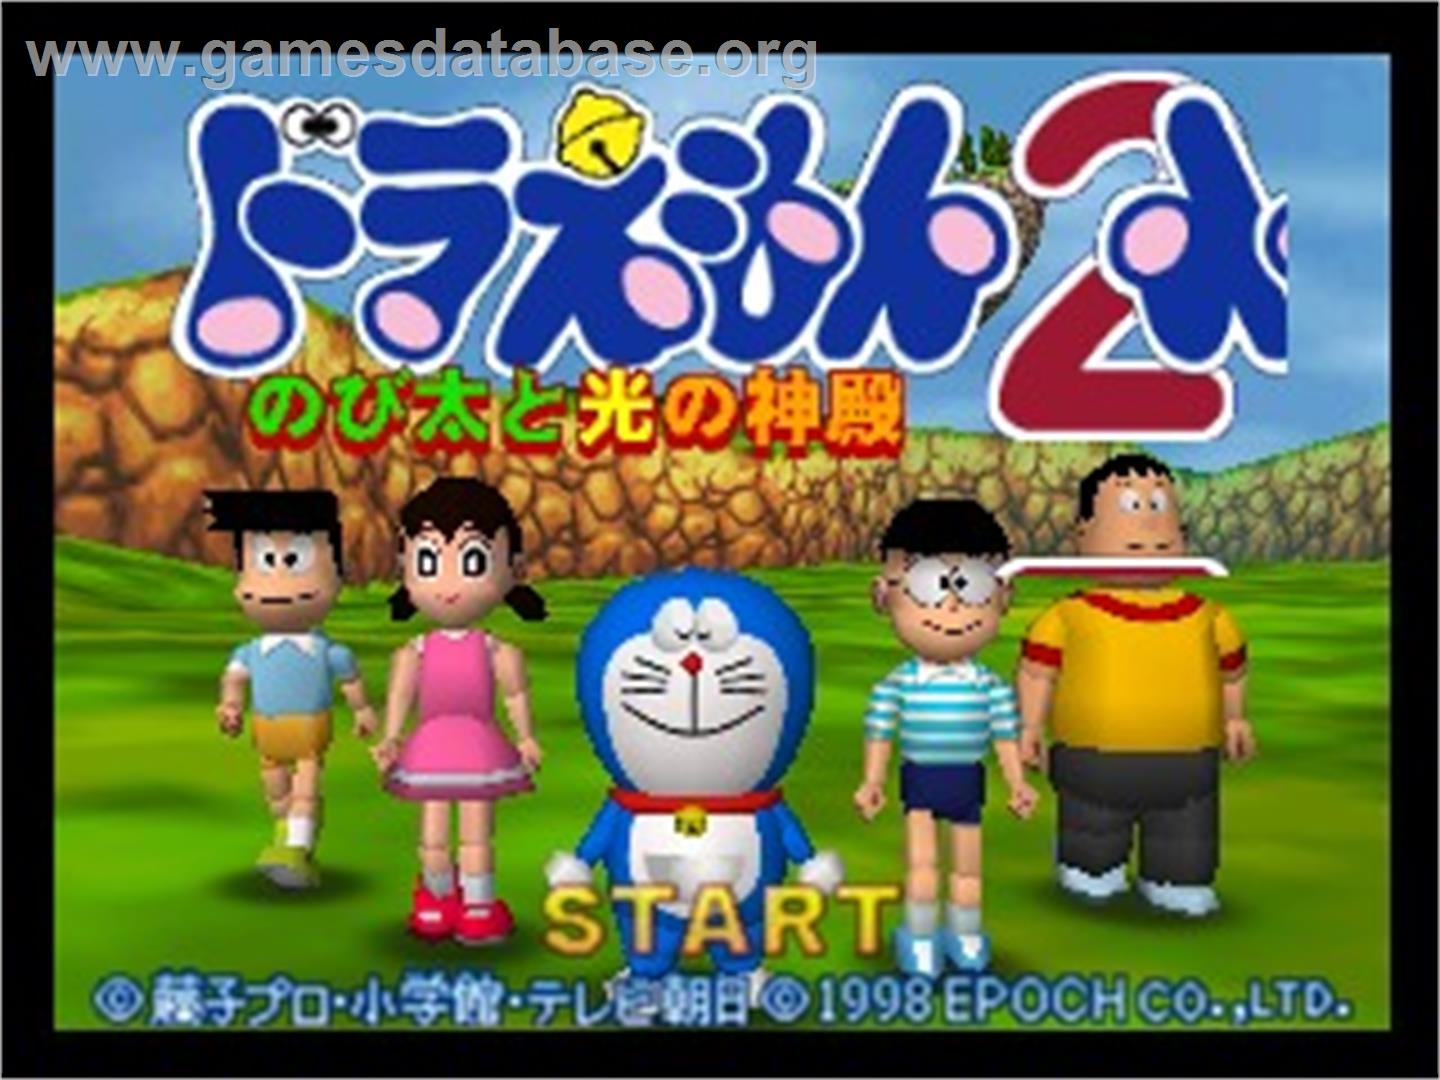 Download Doraemon Game For Ppsspp Excale32 Blog